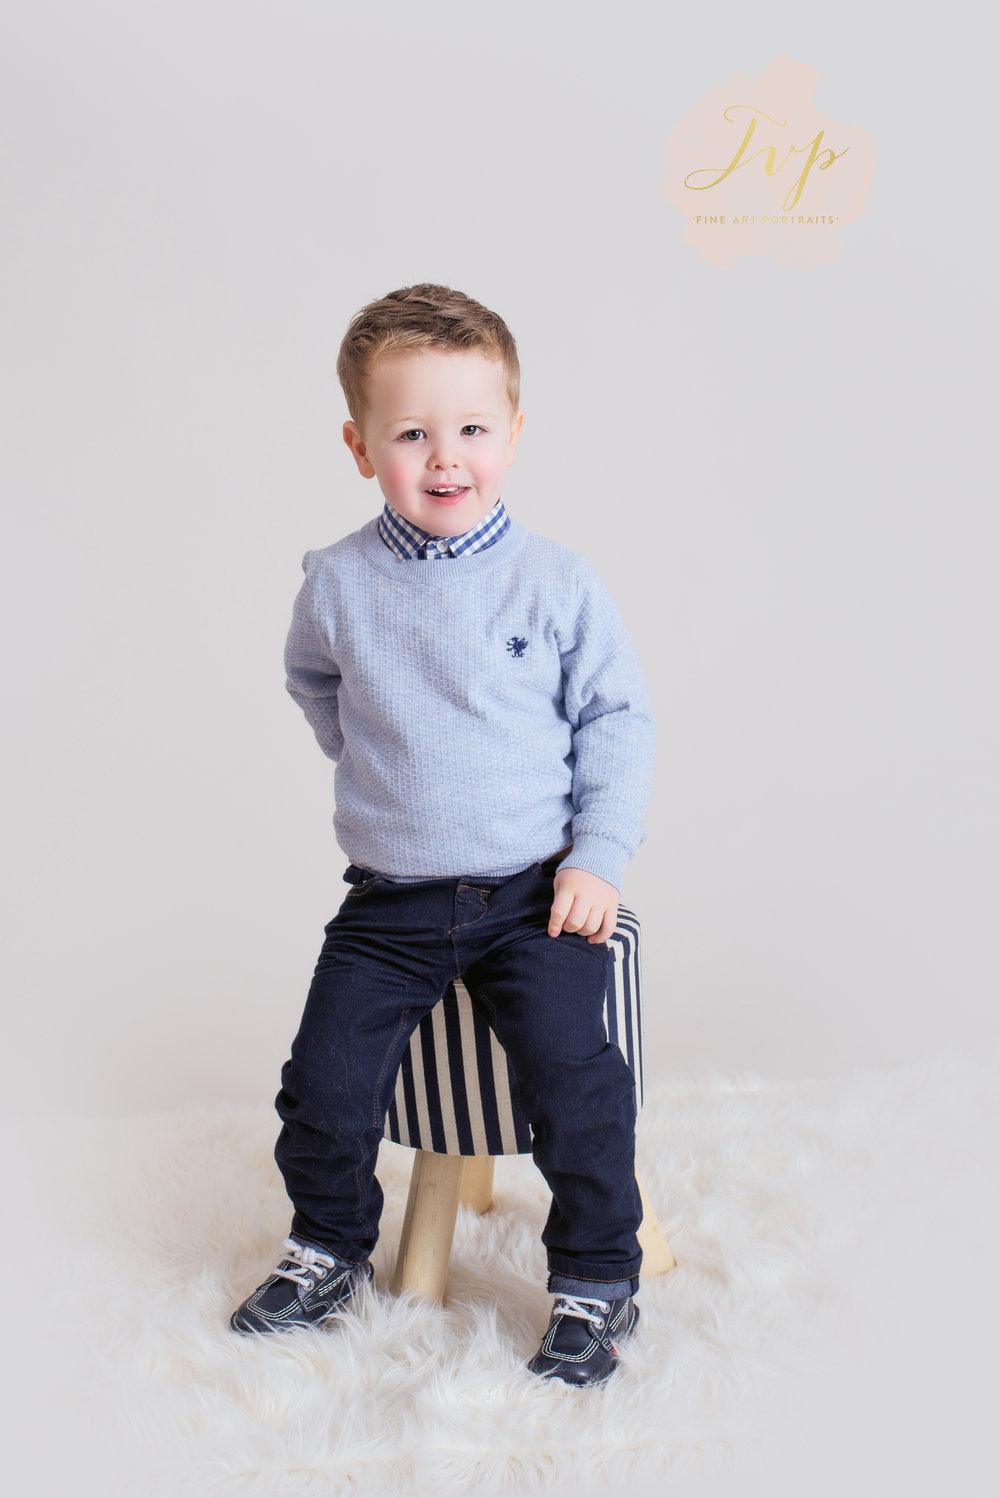 blue-jumper-family-photographer-glasgow